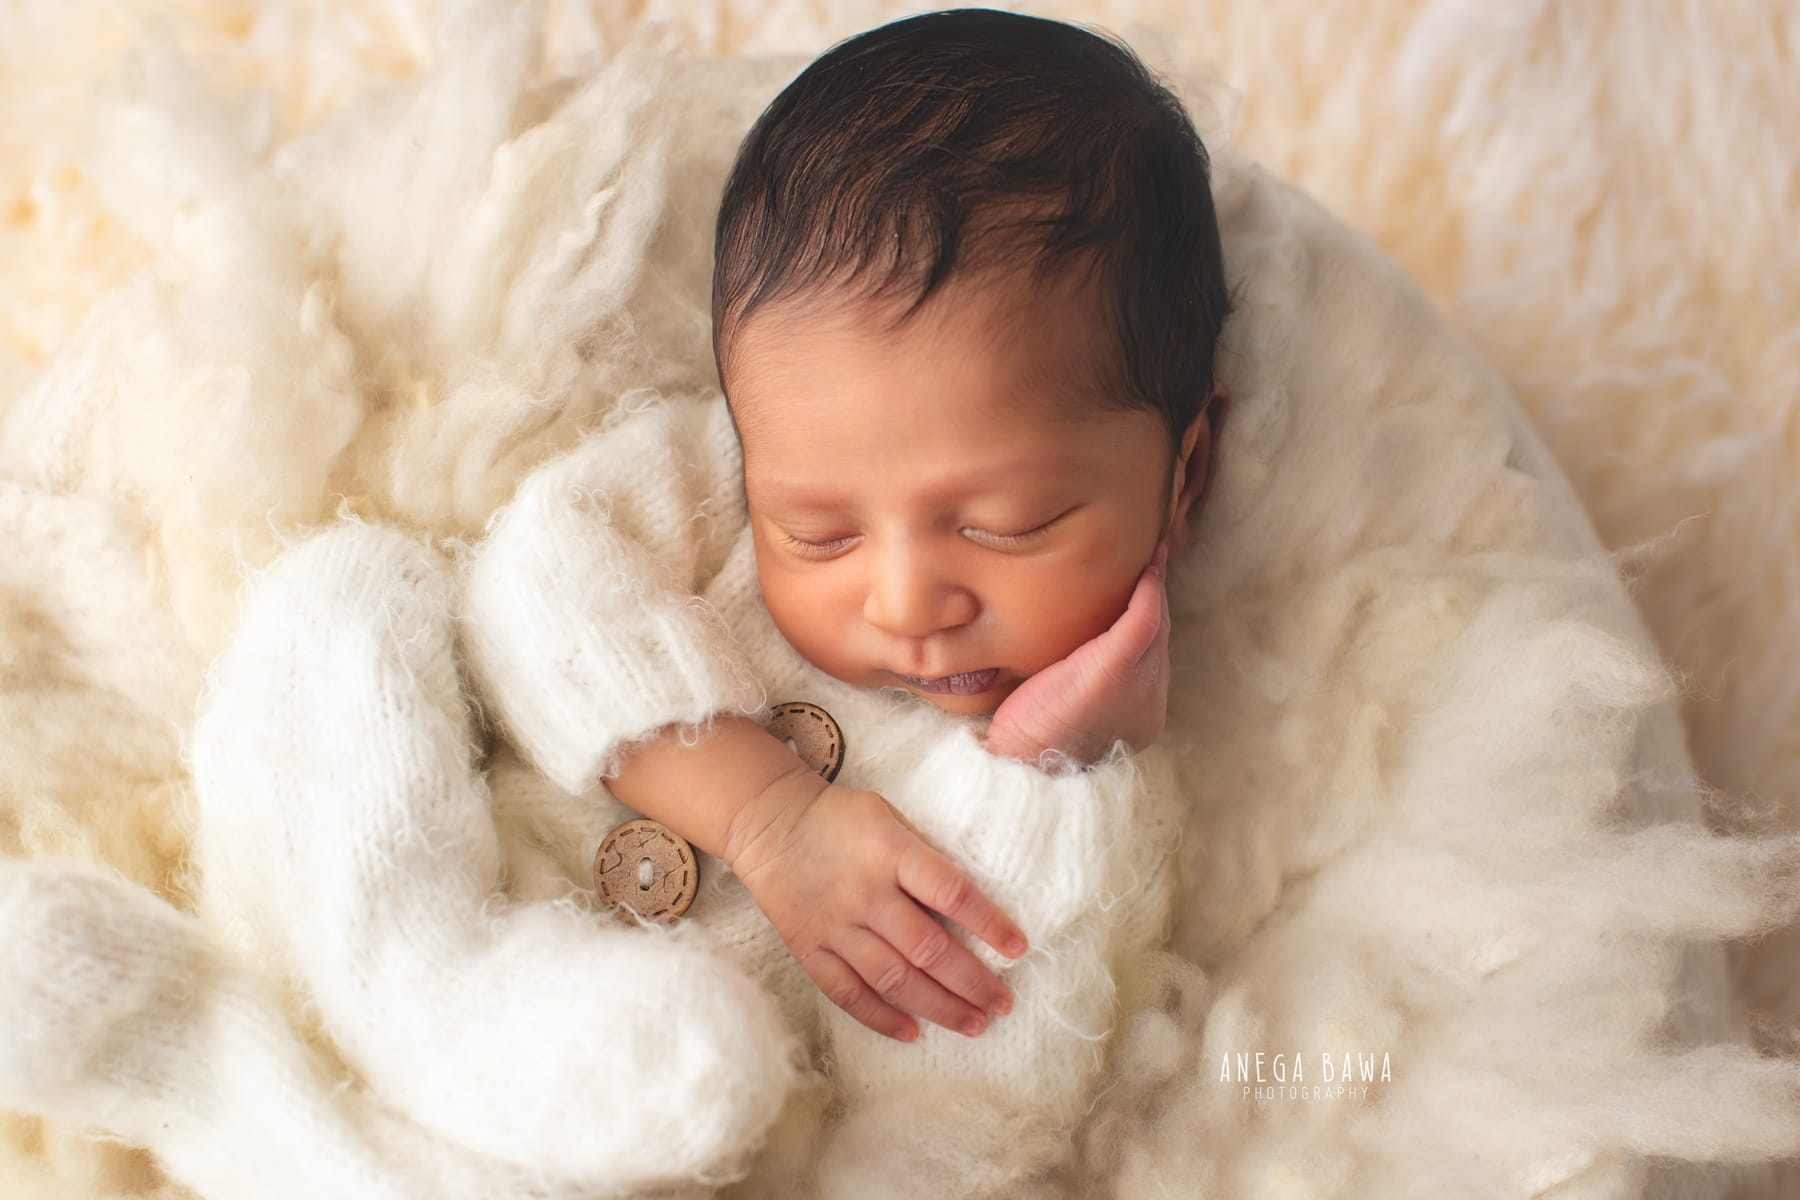 white fur newborn photography delhi 10 days baby boy photoshoot gurgaon anega bawa